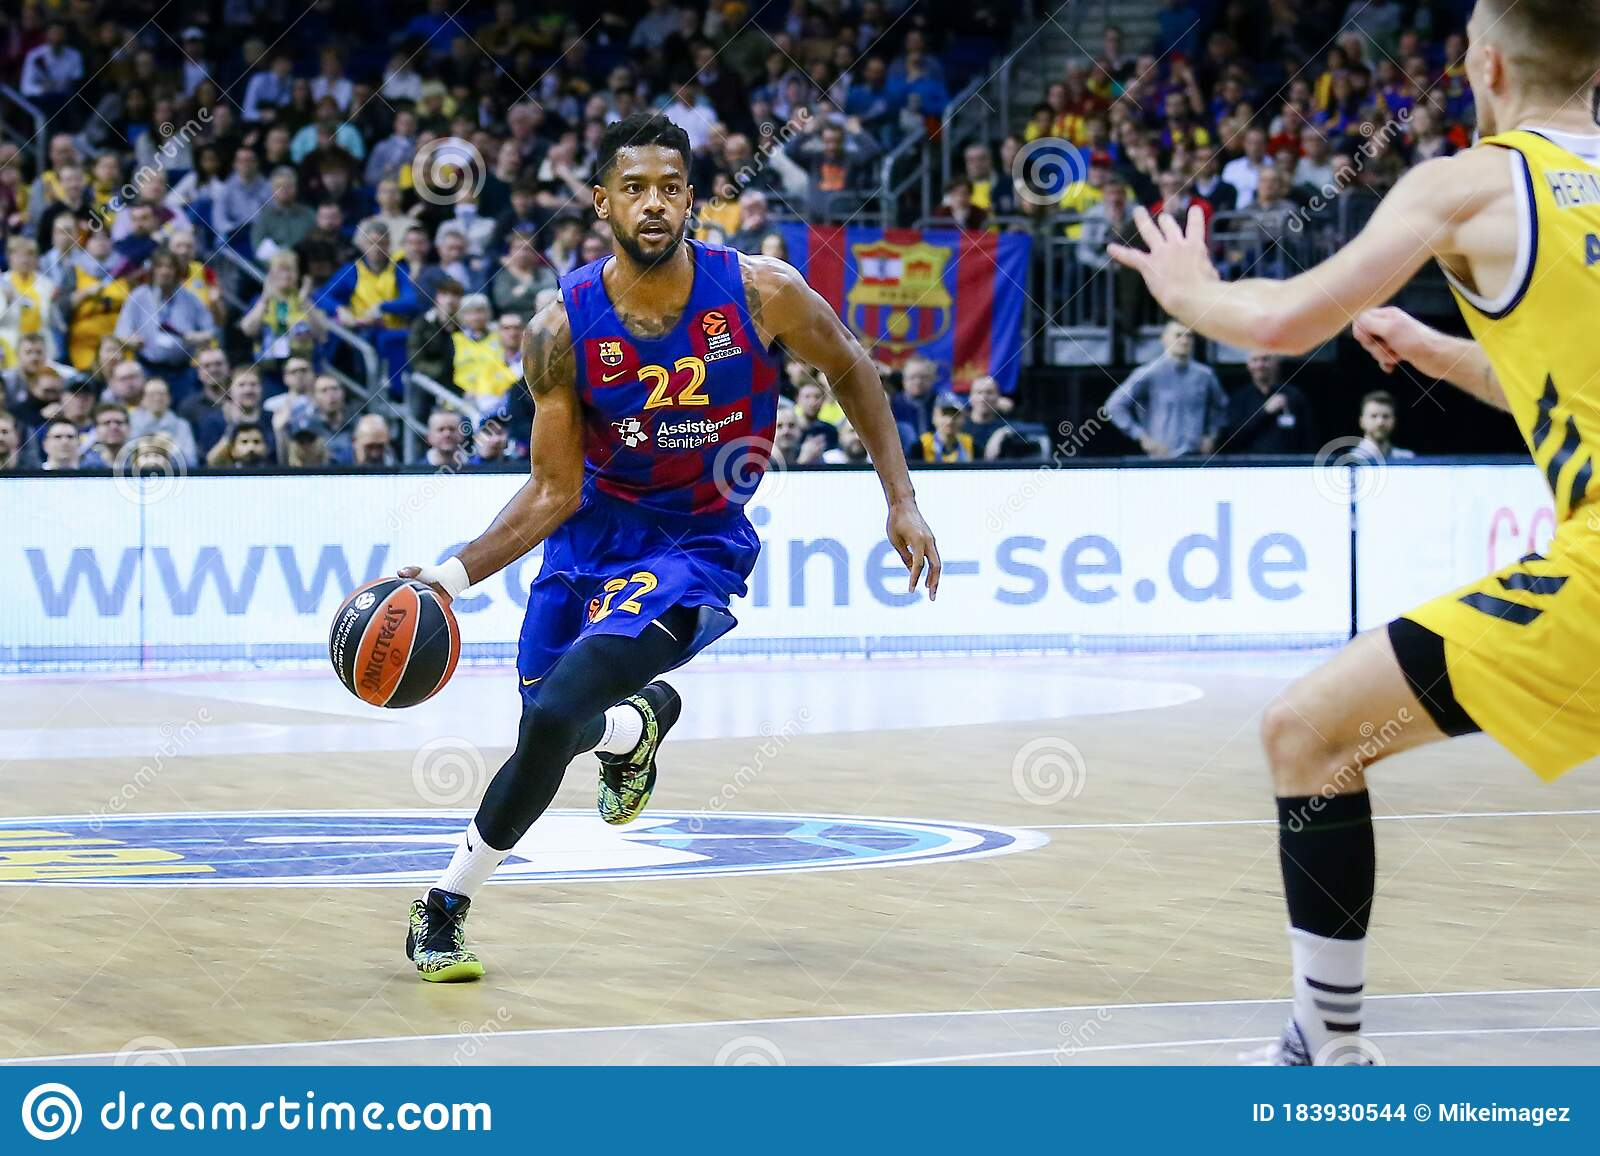 cory higgins of fc barcelona basketball in action during the euroleague basketball match editorial stock image image of airlines europe 183930544 cory higgins of fc barcelona basketball in action during the euroleague basketball match editorial stock image image of airlines europe 183930544